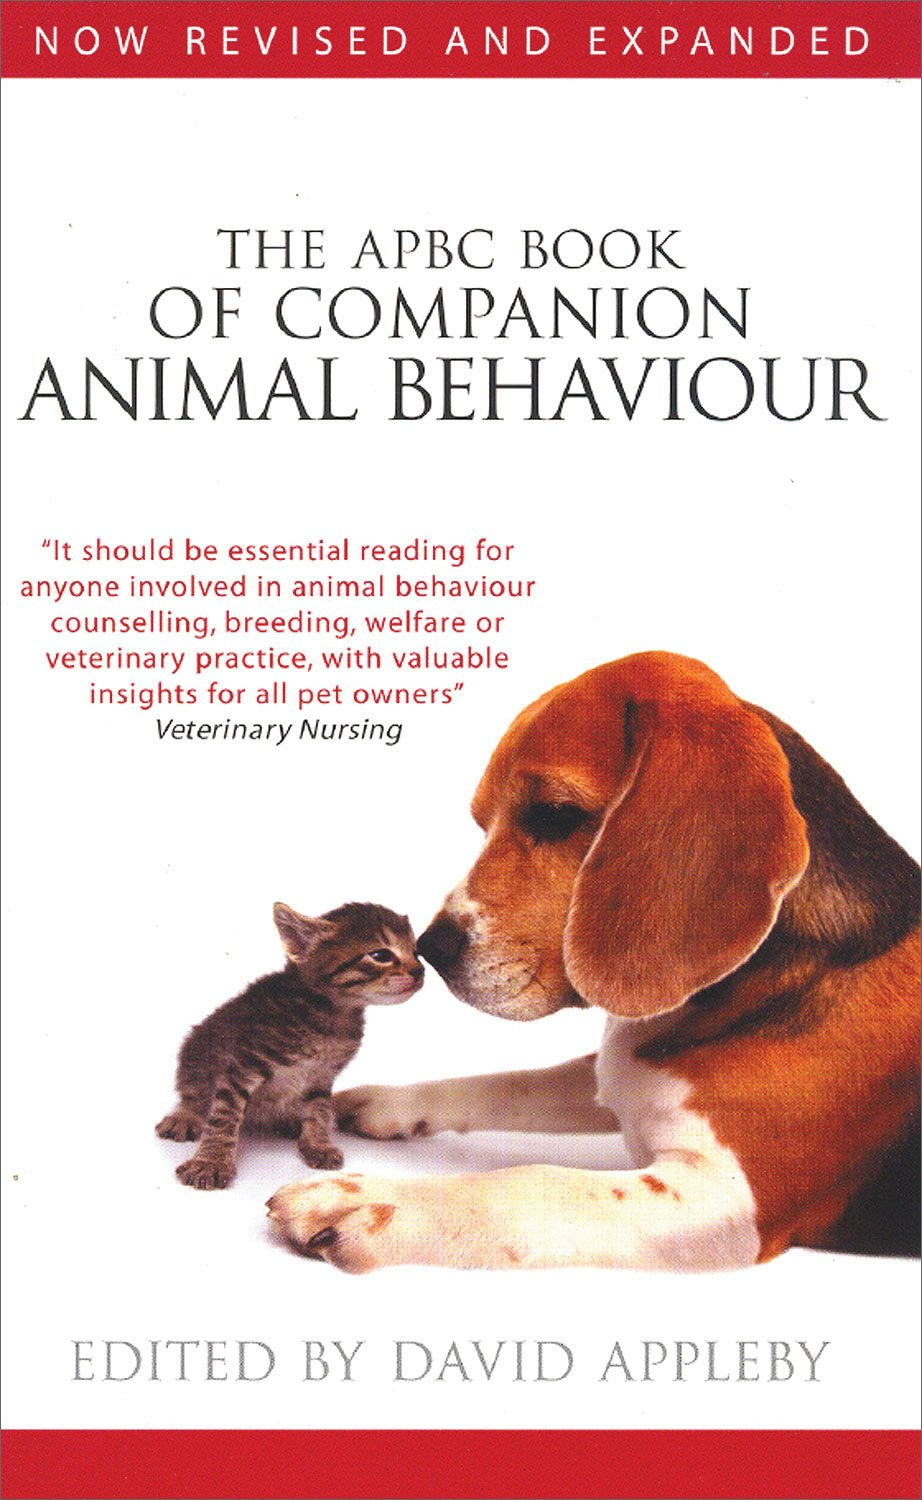 The APBC Book of Companion Animal Behaviour pdf